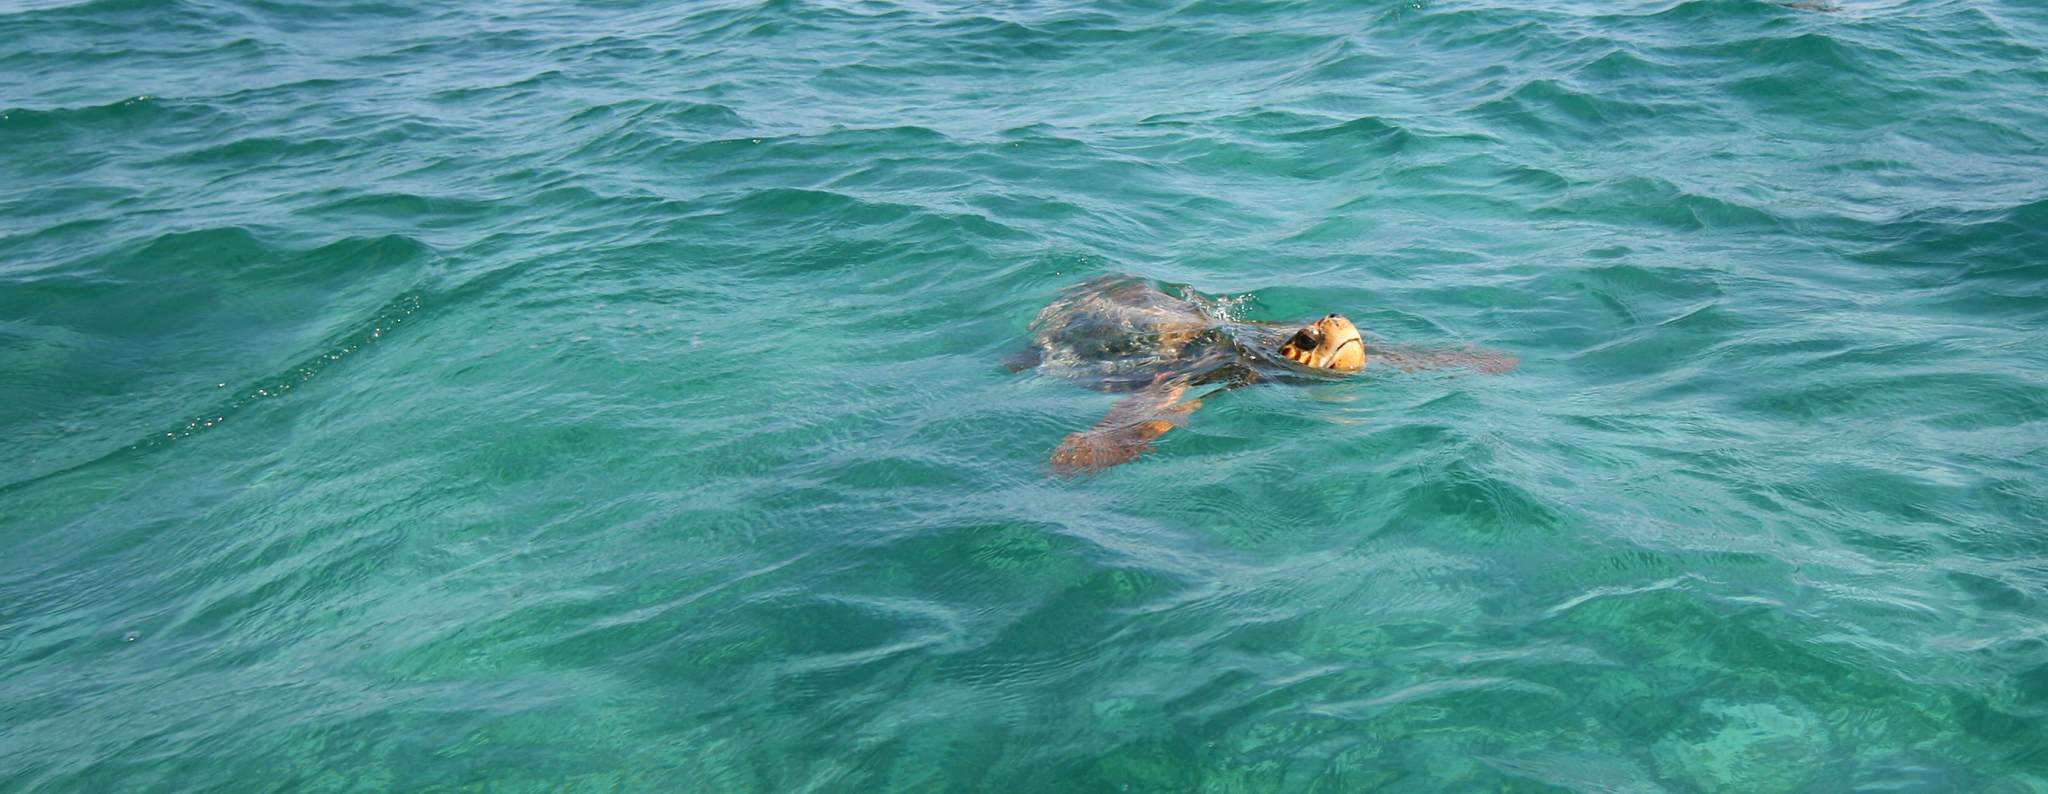 A Loggerhead sea turtle. Photo by Walter Rodriguez